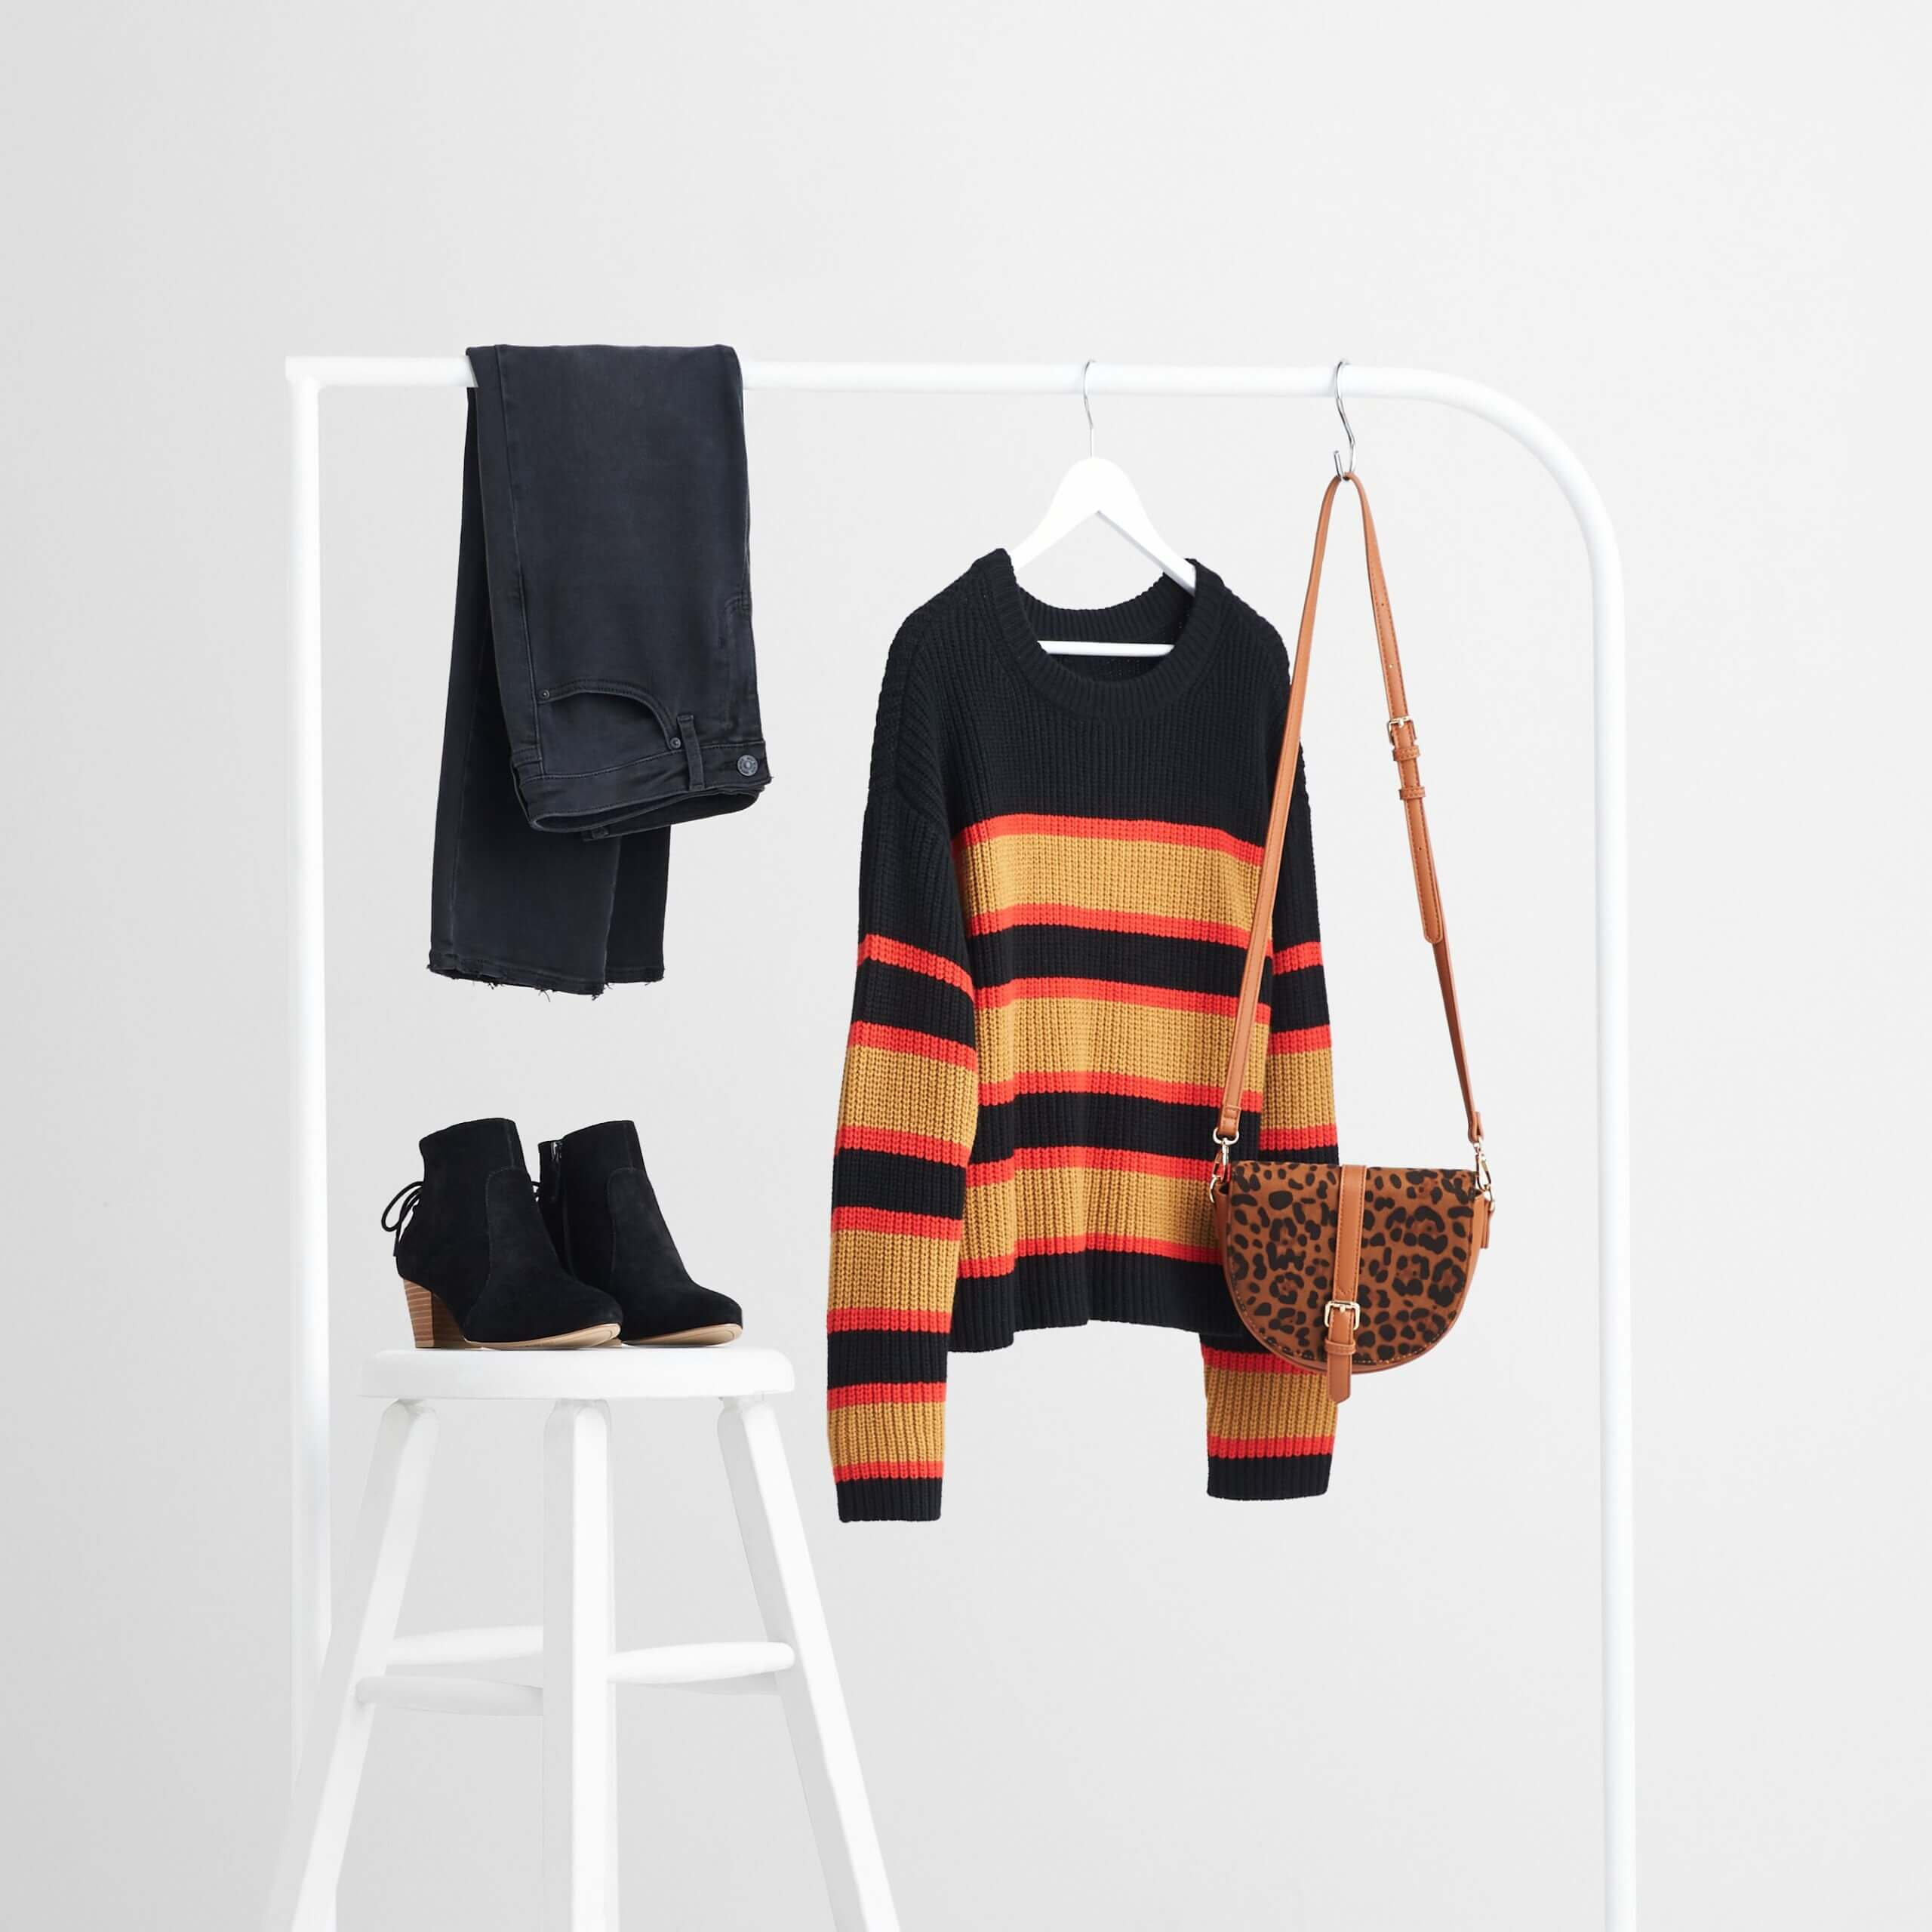 Stitch Fix Women's rack image with brown animal-print purse, black pullover sweater with orange stripes and black jeans on white rack, next to black booties on a white stool.